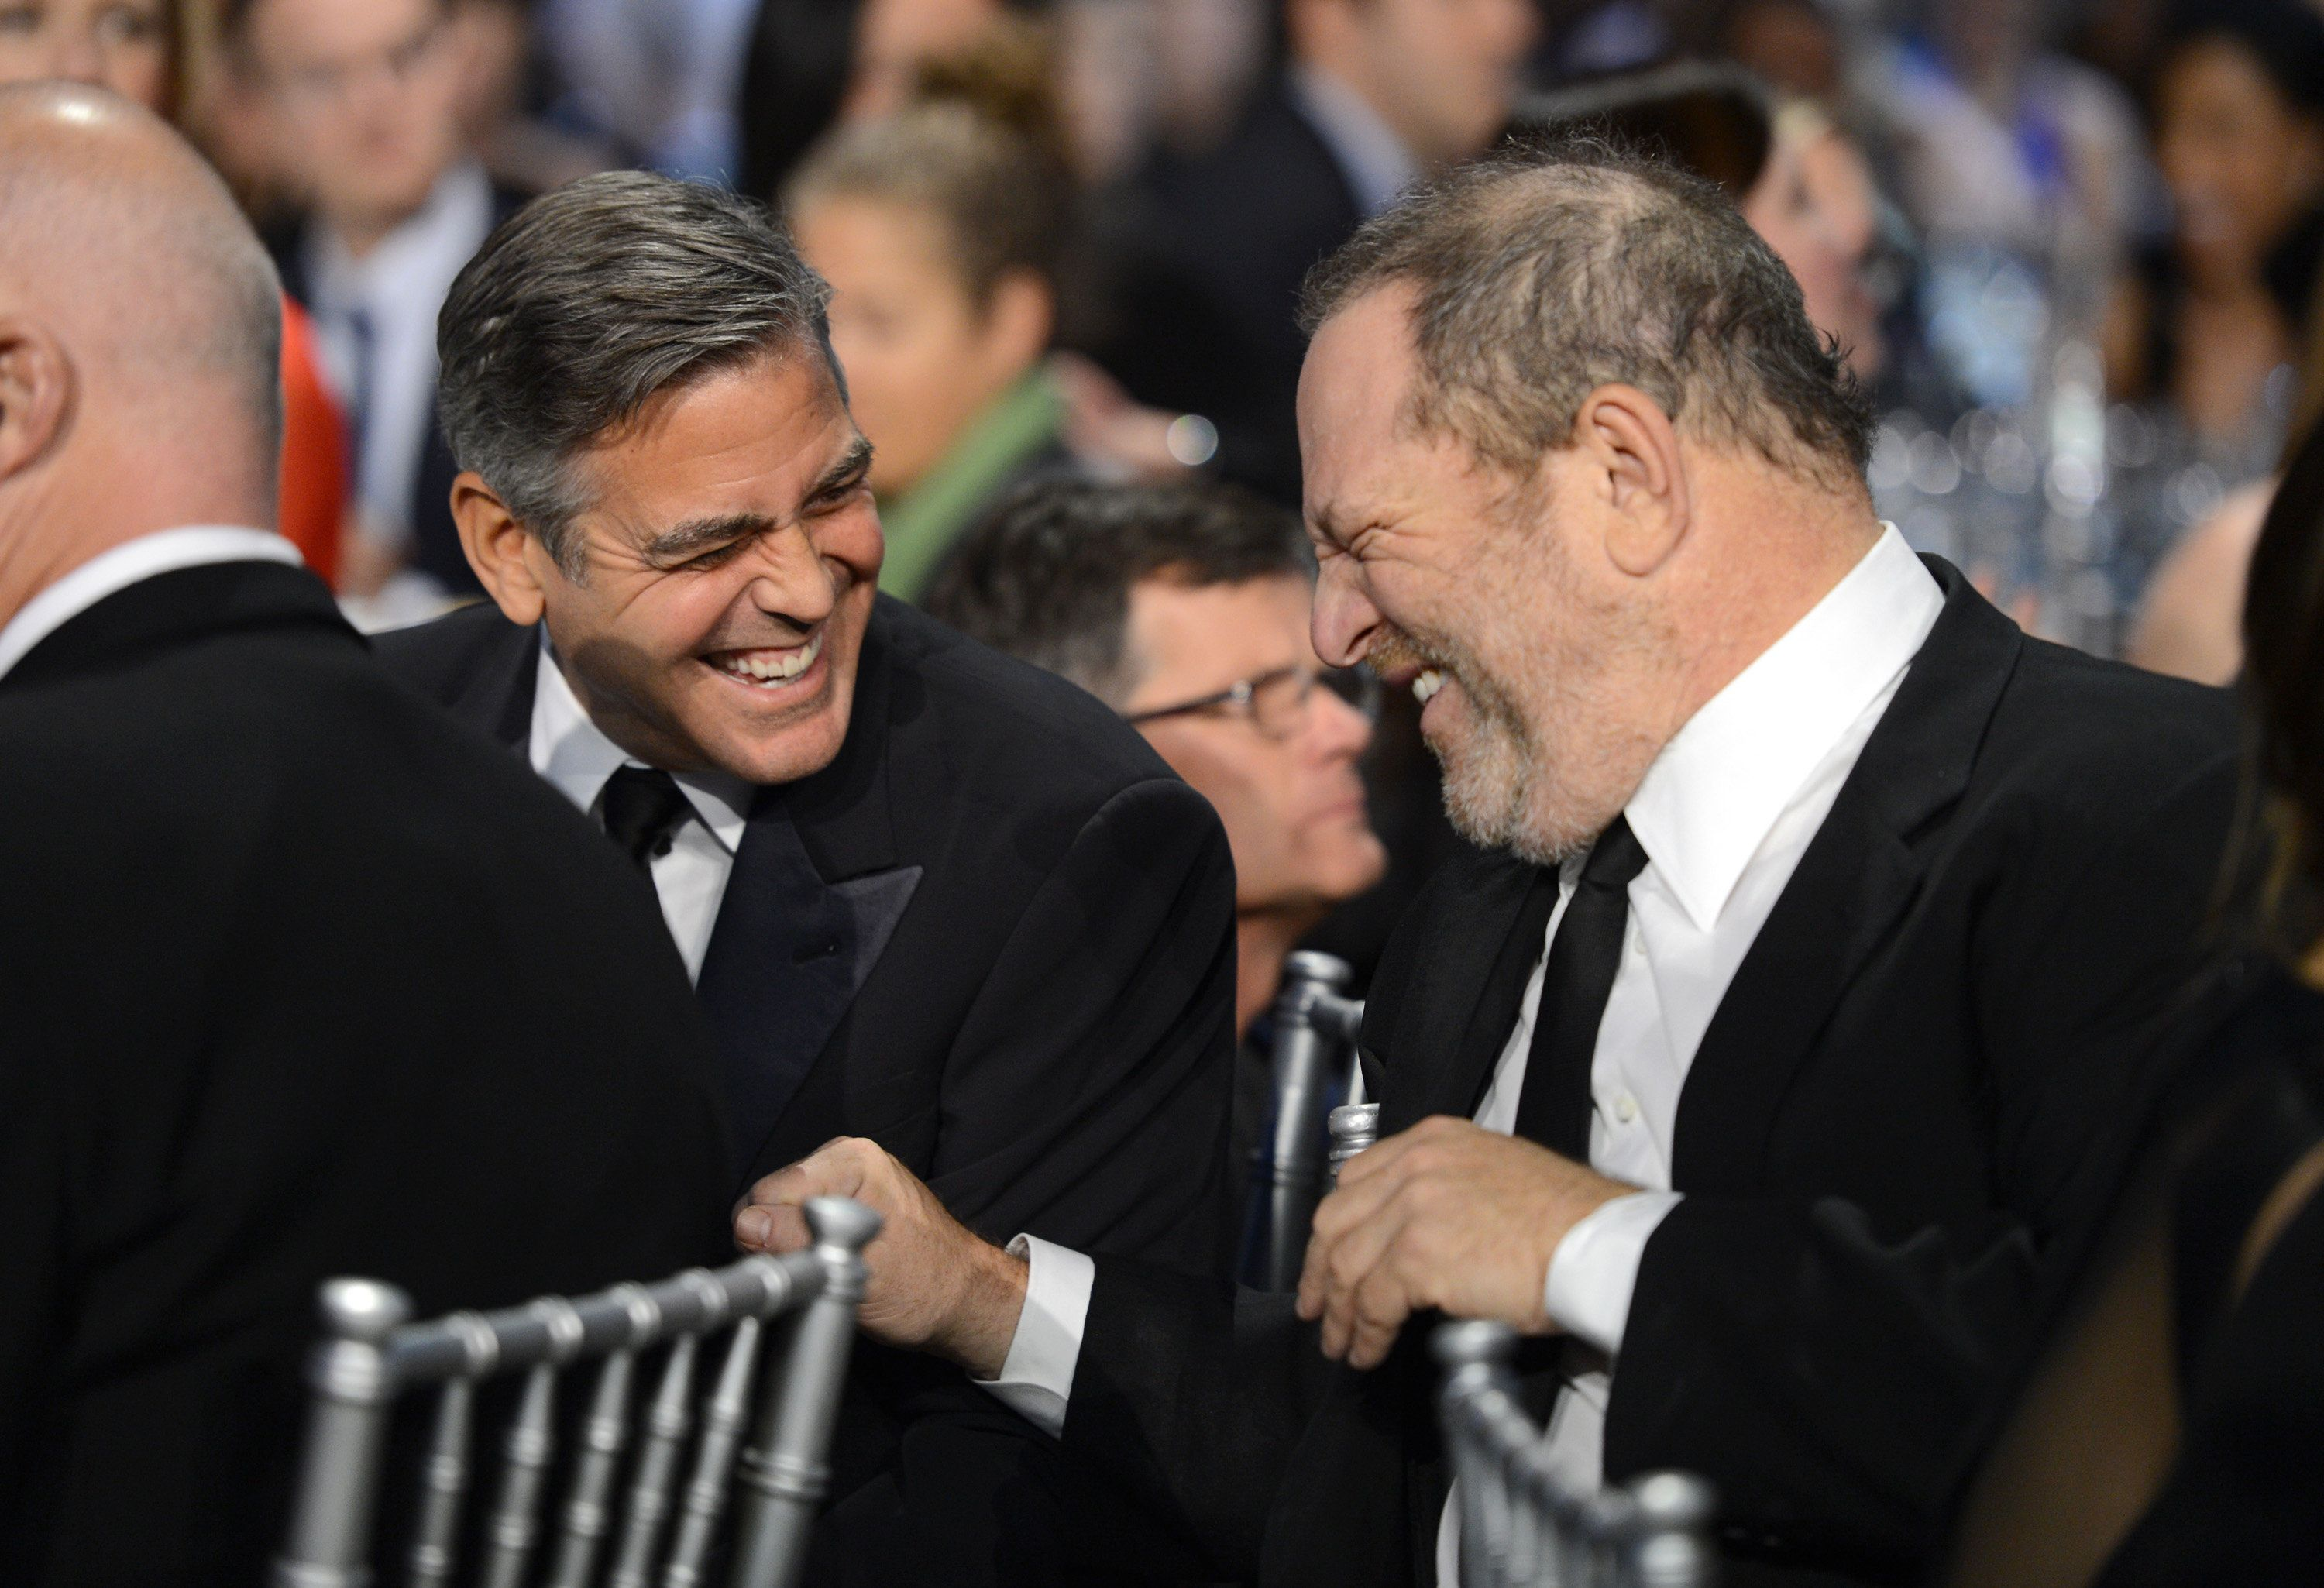 SANTA MONICA, CA - JANUARY 10: Actor George Clooney and producer Harvey Weinstein attend the Critics' Choice Movie Awards 2013 with Skinnygirl Cocktails at Barkar Hangar on January 10, 2013 in Santa Monica, California.  (Photo by Michael Kovac/WireImage)